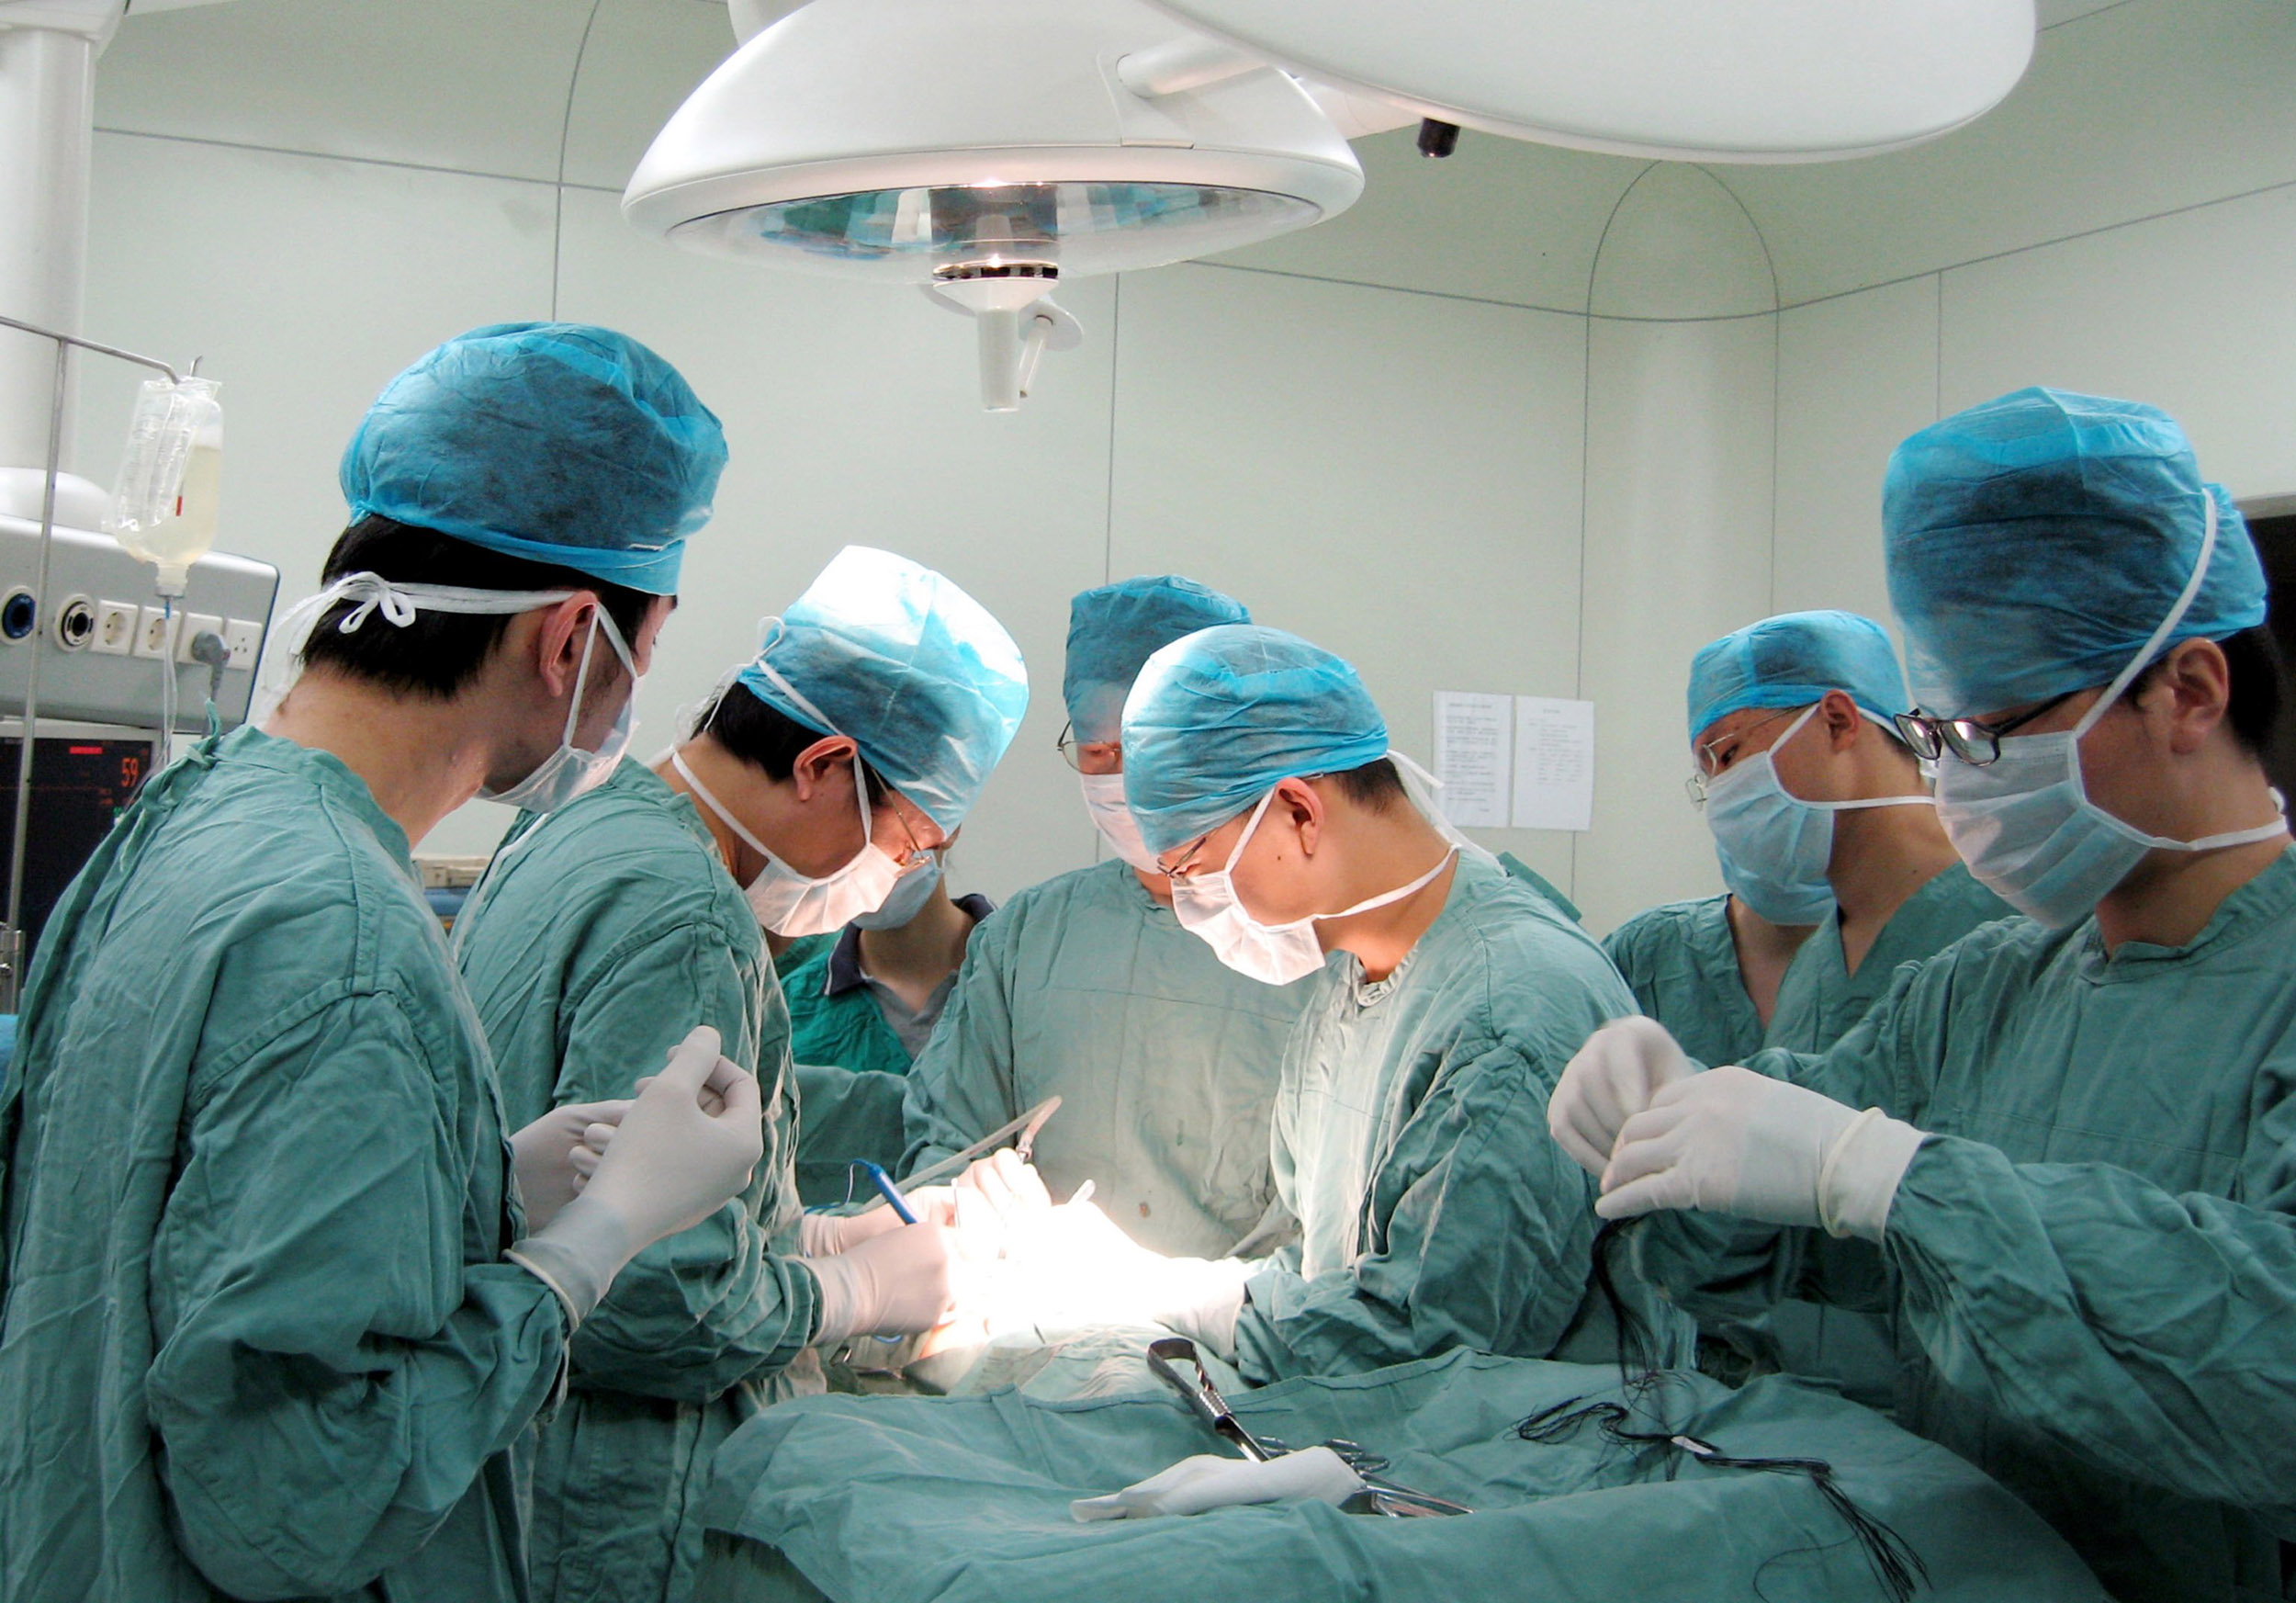 Claims China is forcibly harvesting organs of Uighur population